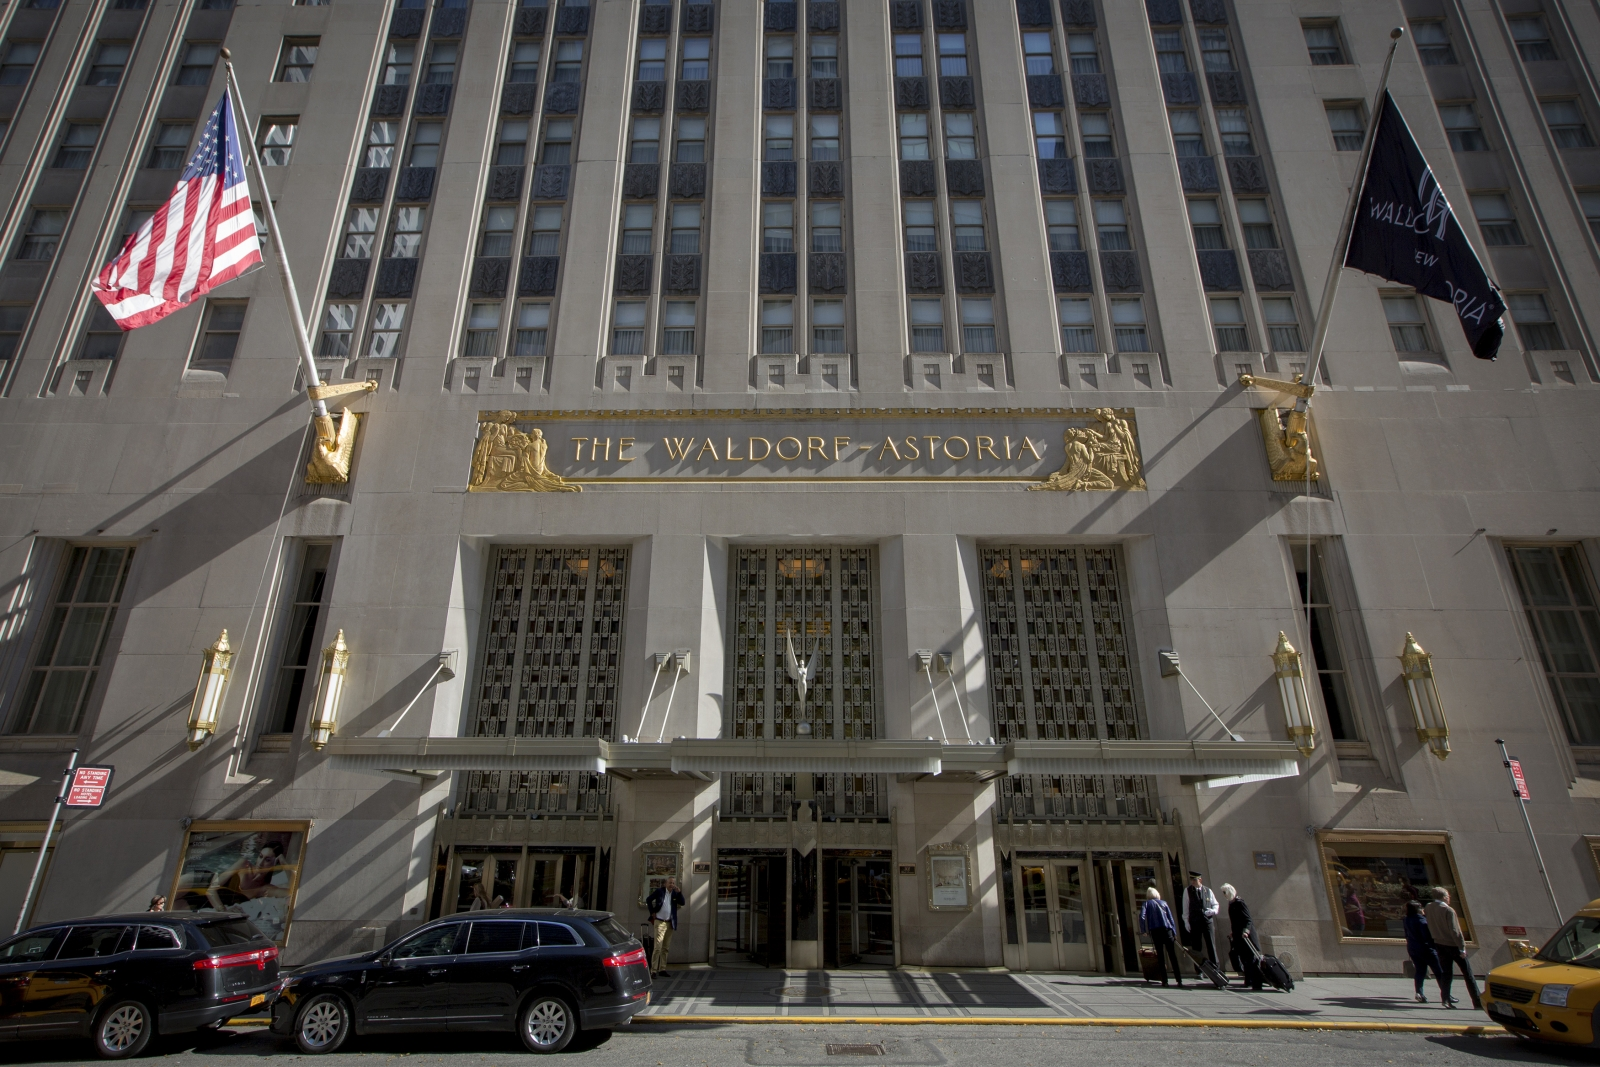 New York's Waldorf Astoria